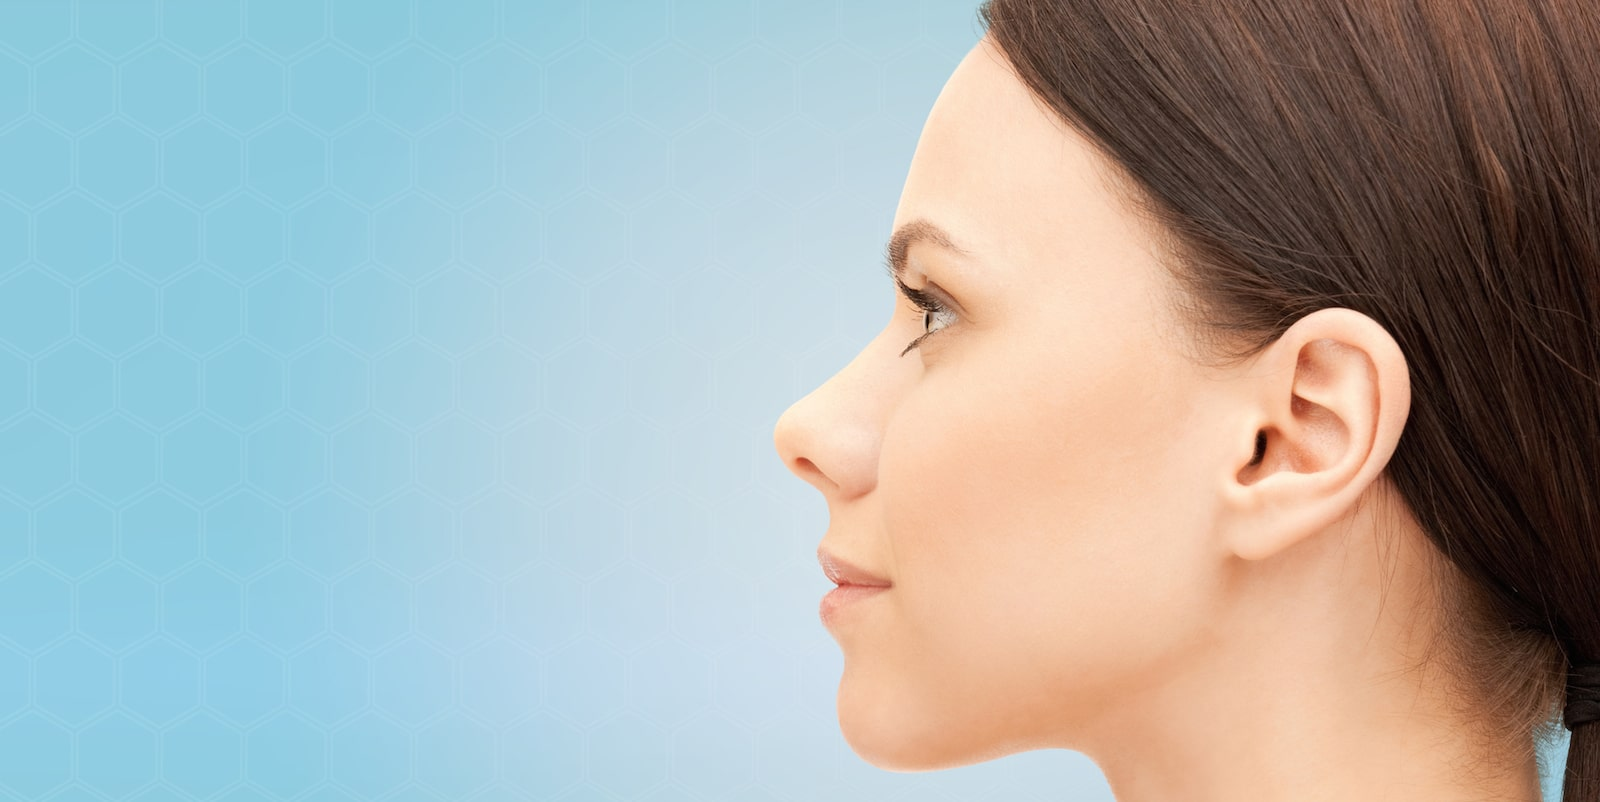 Length of time patients expect for rhinoplasty recovery